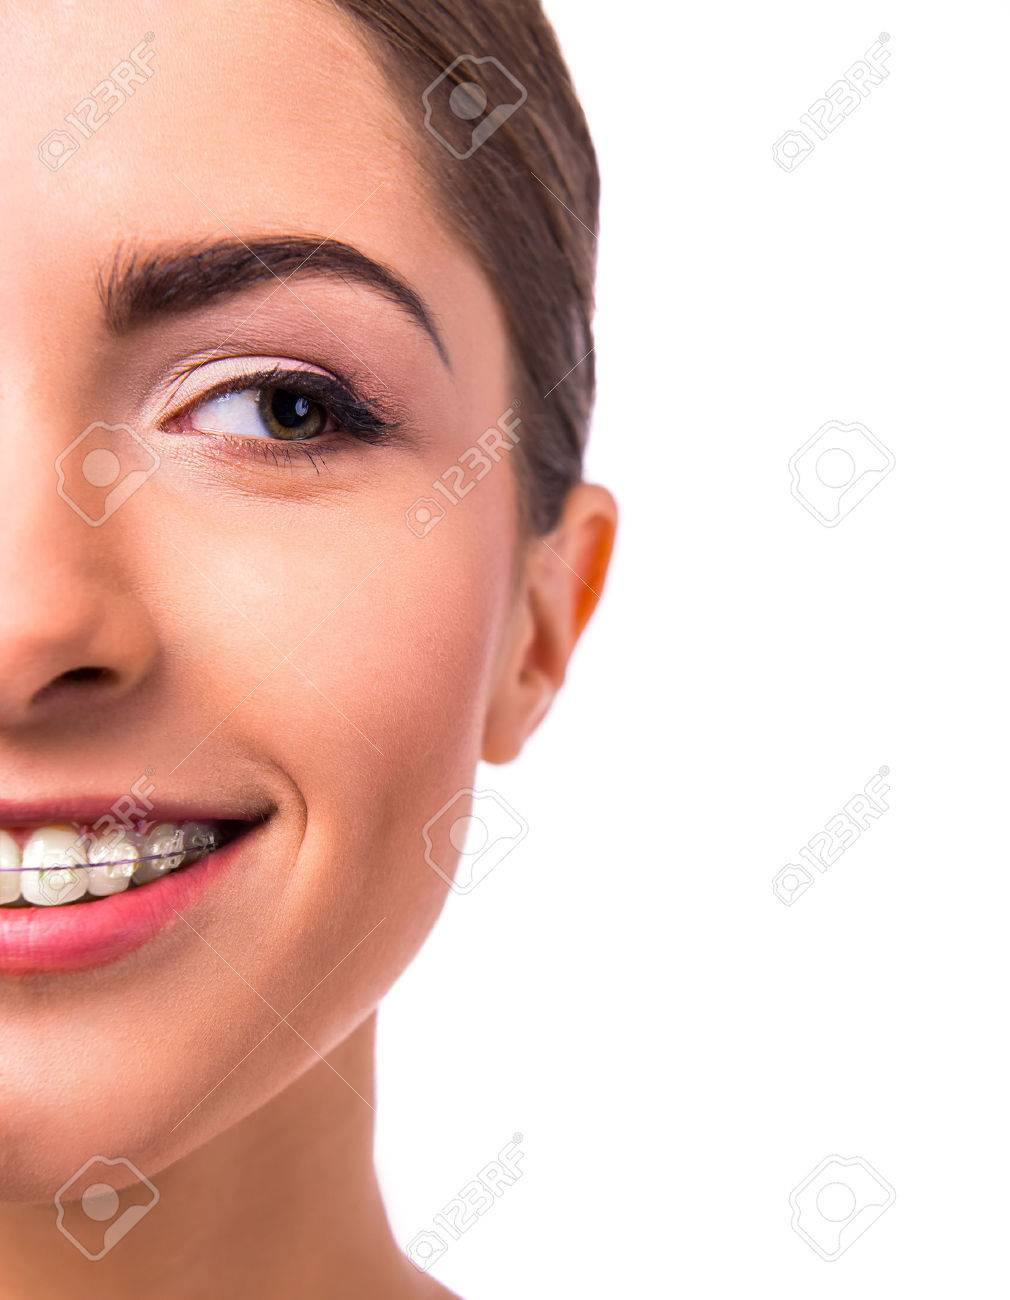 Portrait of a beautiful woman with braces on teeth, isolated on a white background Standard-Bild - 47179021